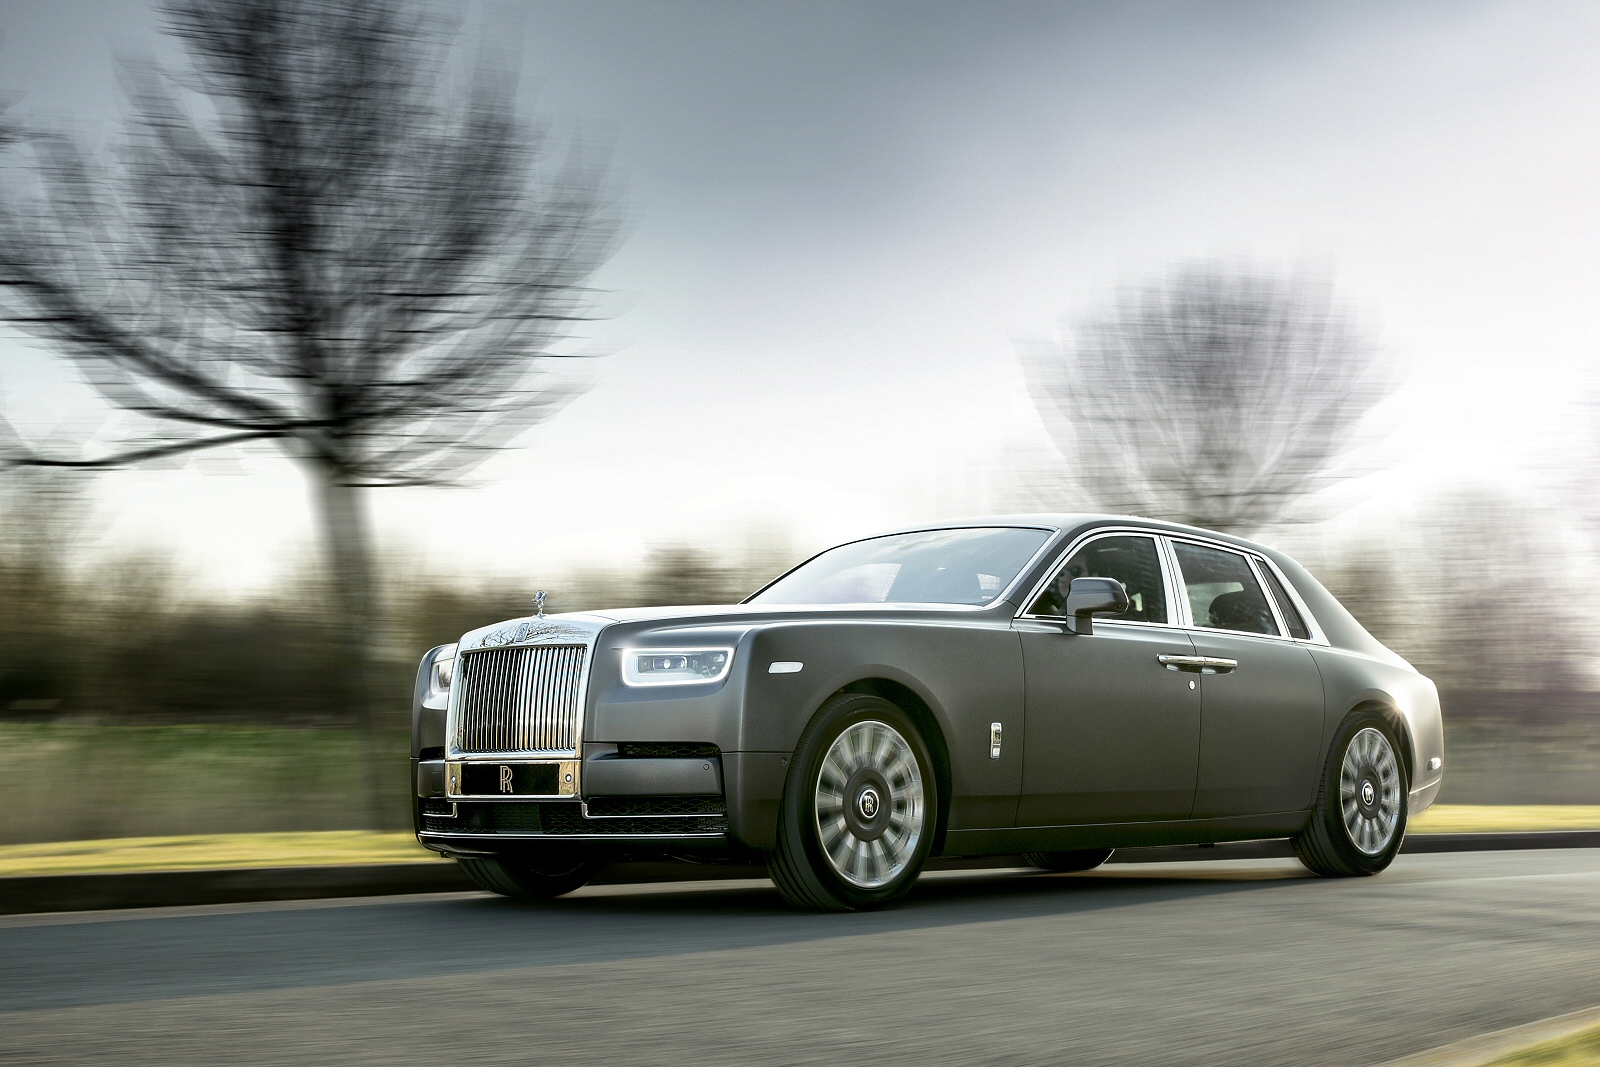 Rolls Royce see record sales throughout 2019